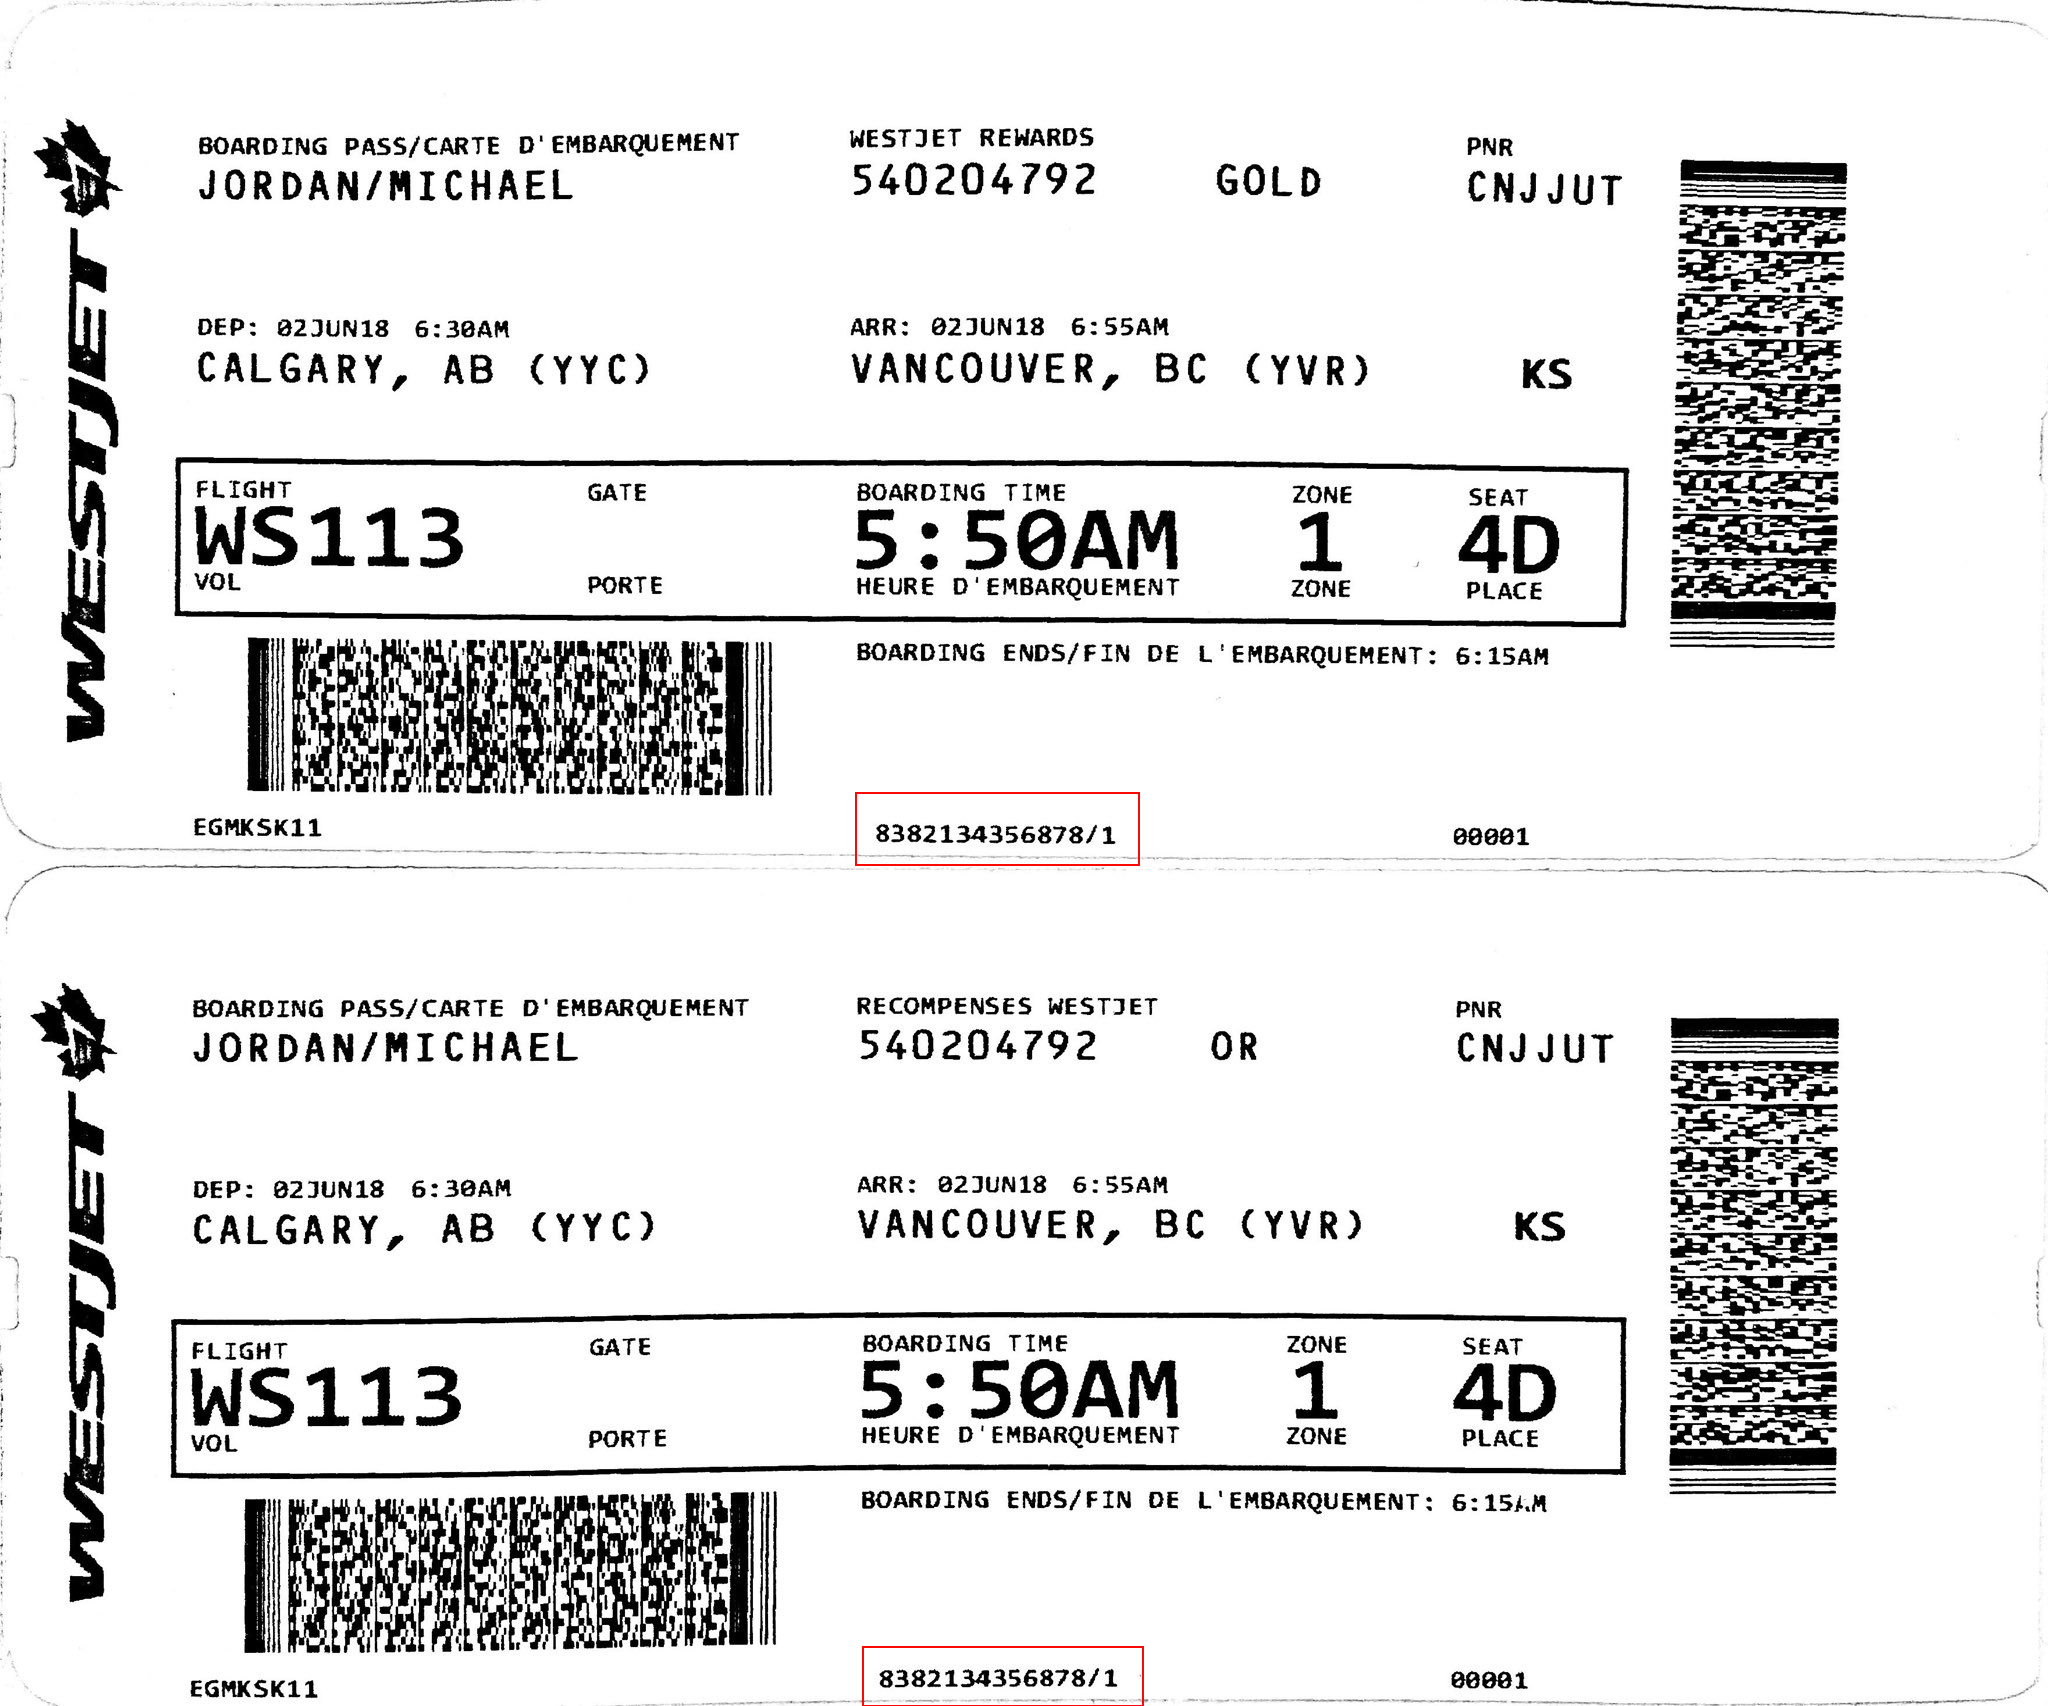 Boarding pass issued at an airport kiosk and by a customer service agent